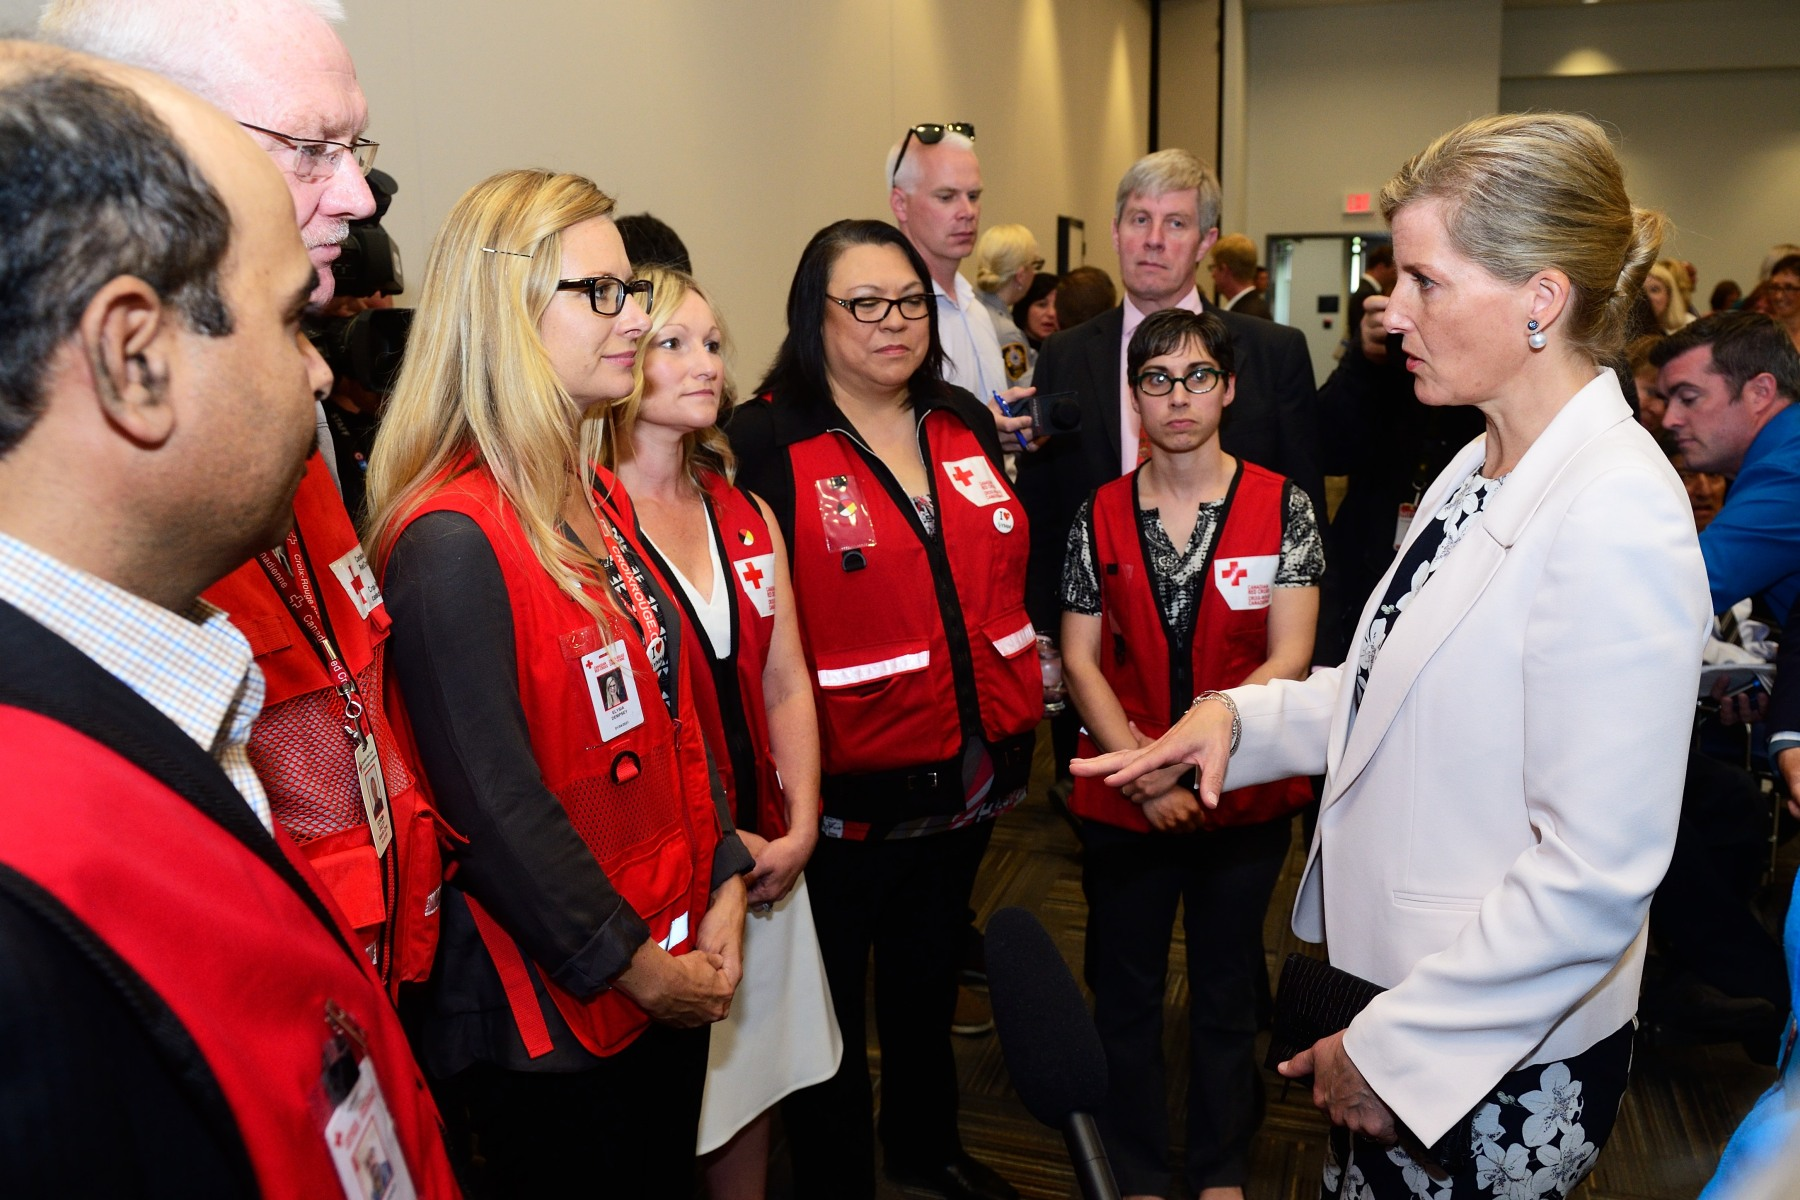 Her Royal Highness spent time speaking with representatives from the Red Cross.